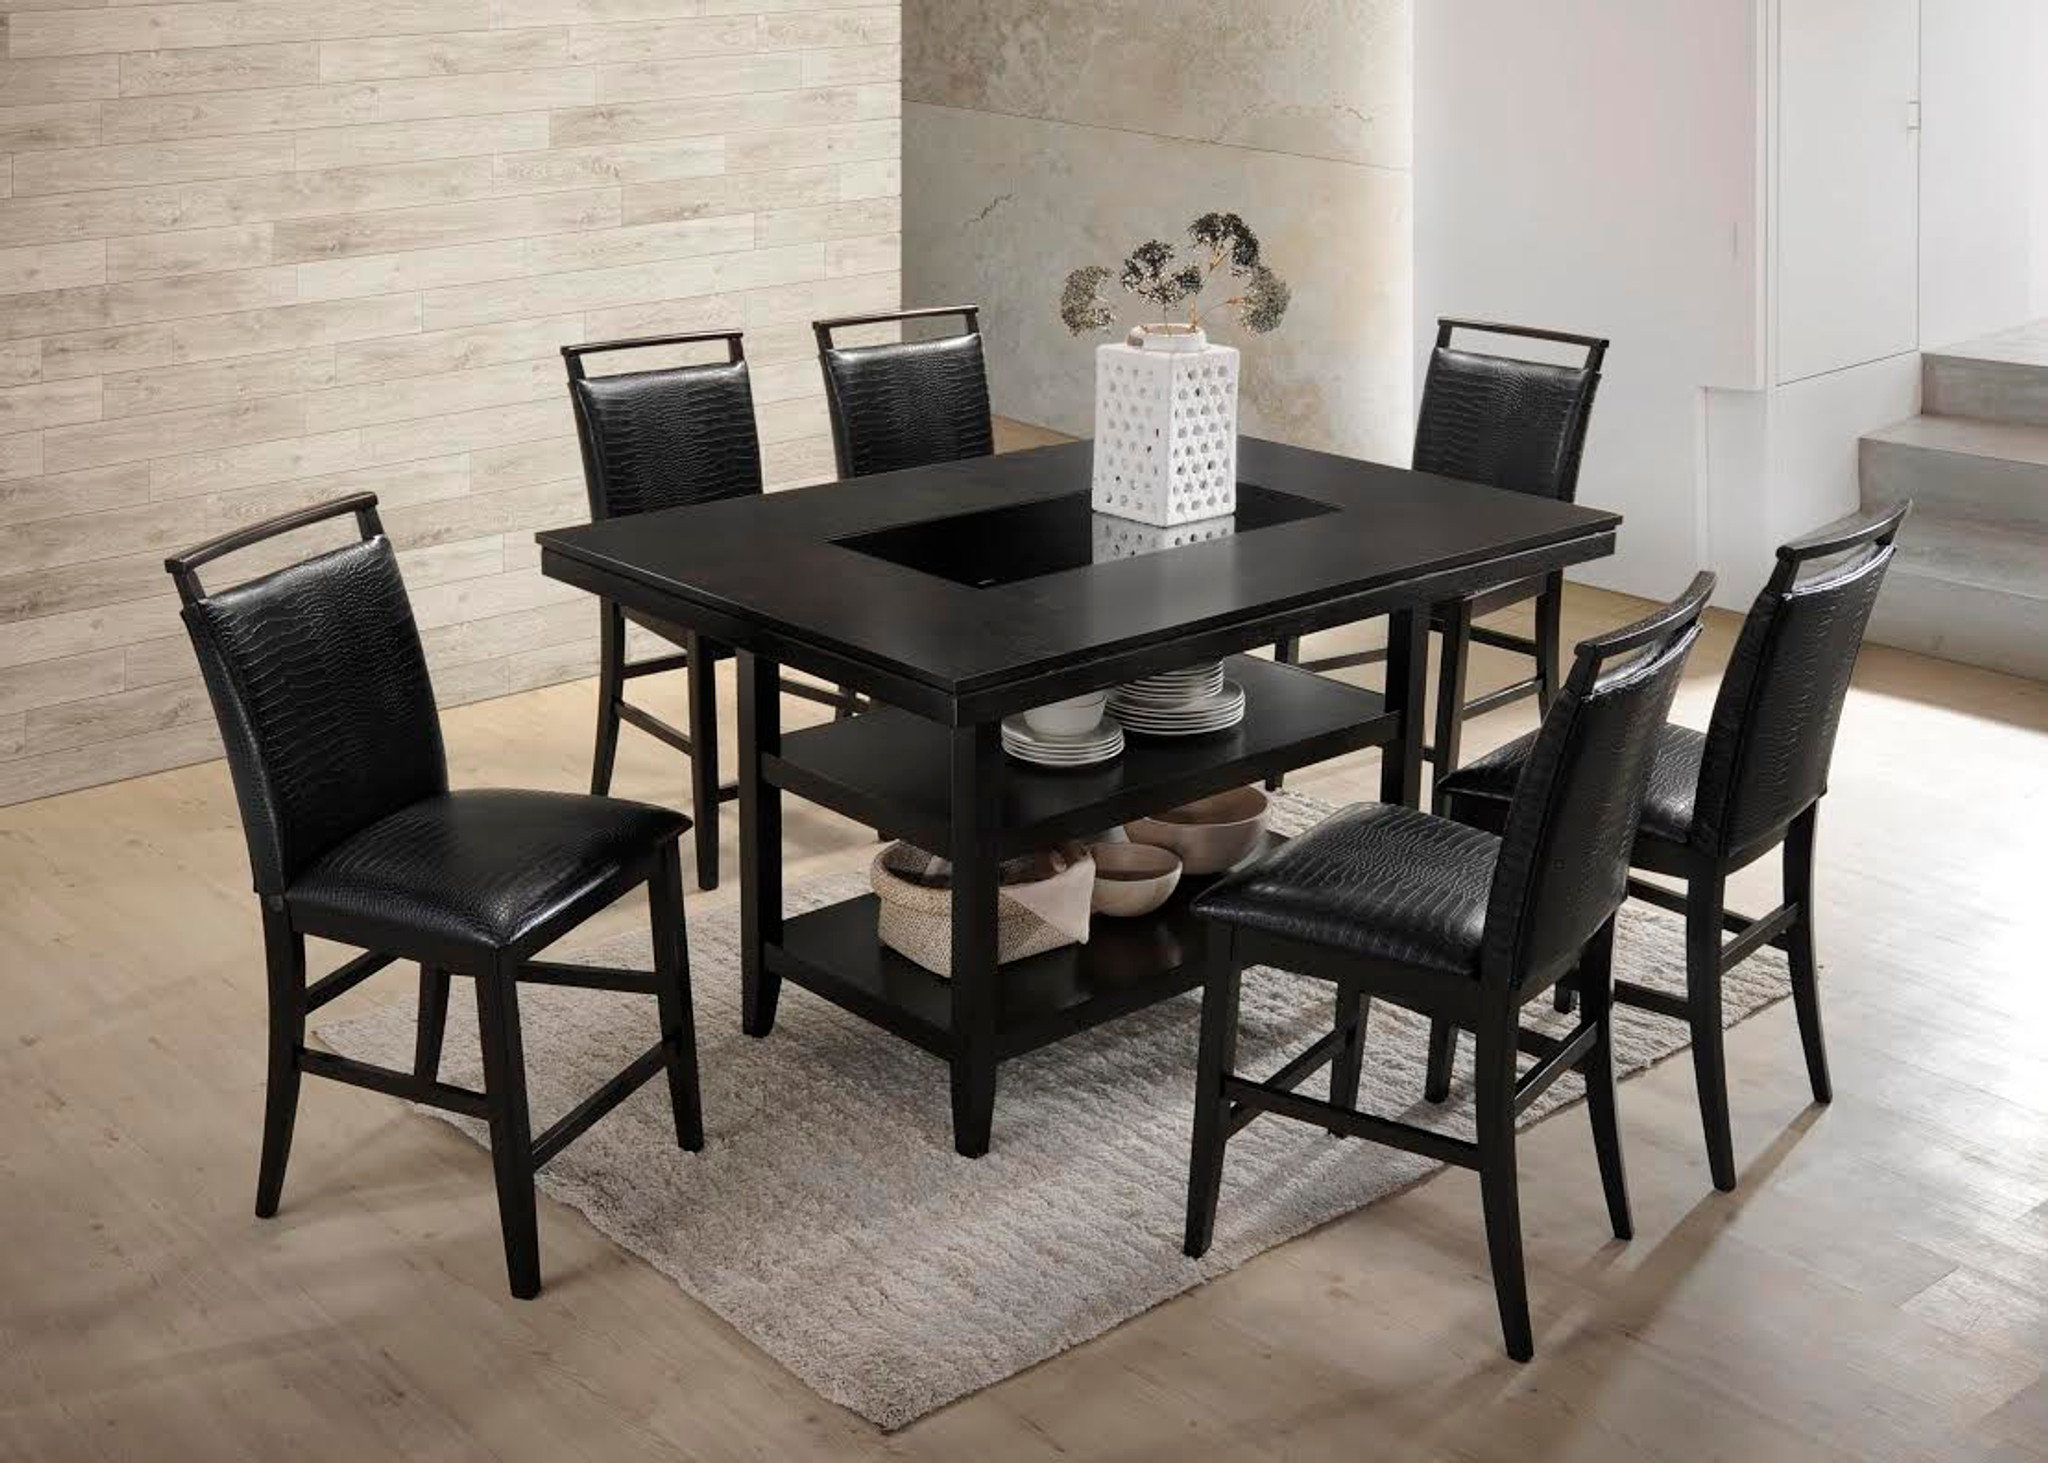 7pcs Black Counter Height Dining Table Set Black Crocodile Upholstery